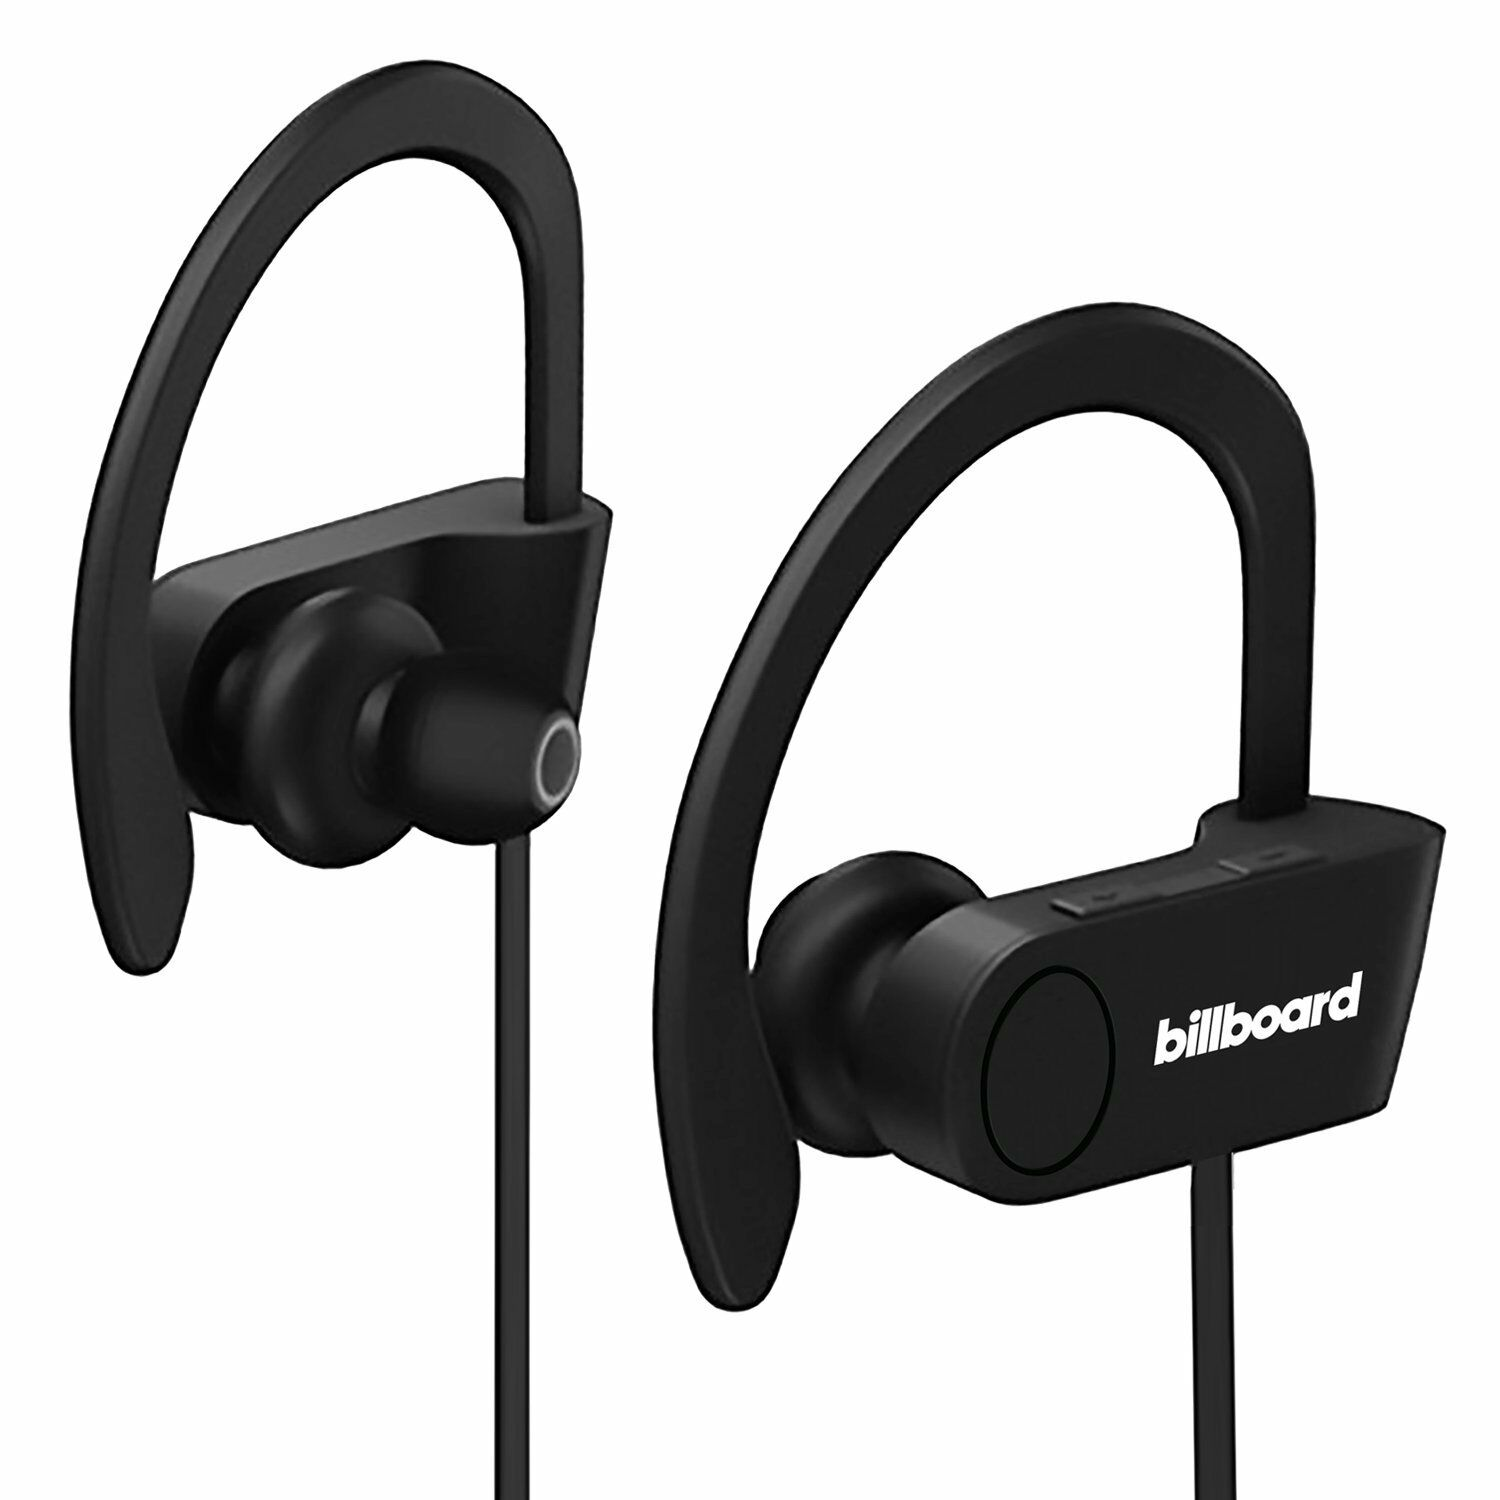 93a6285106e BILLBOARD Bluetooth Earhook Headset With Microphone (black) Bb896 ...